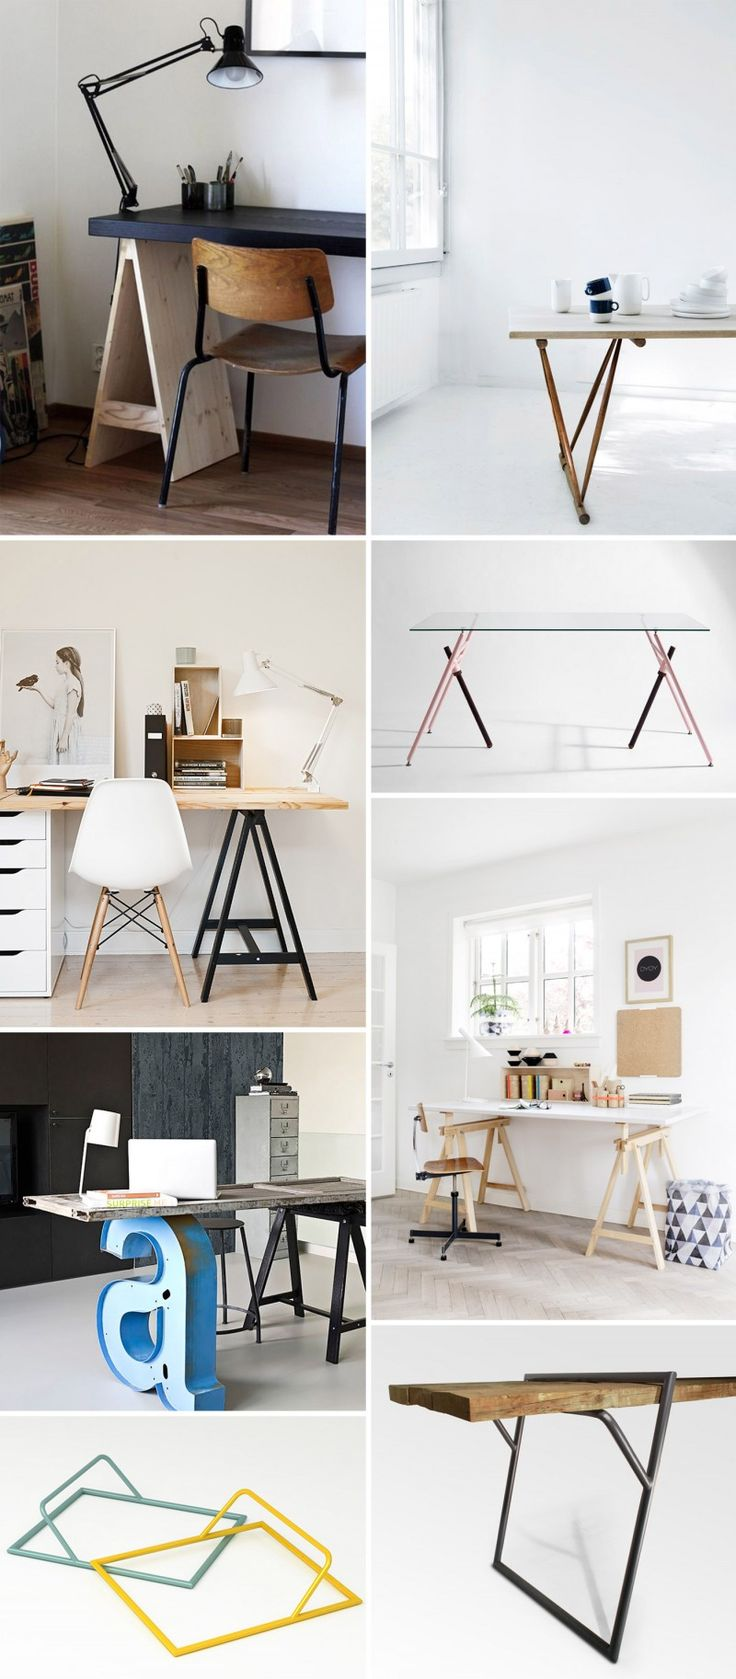 top 25 ideas about bureaus on pinterest bureau ikea alex little and bureau design. Black Bedroom Furniture Sets. Home Design Ideas